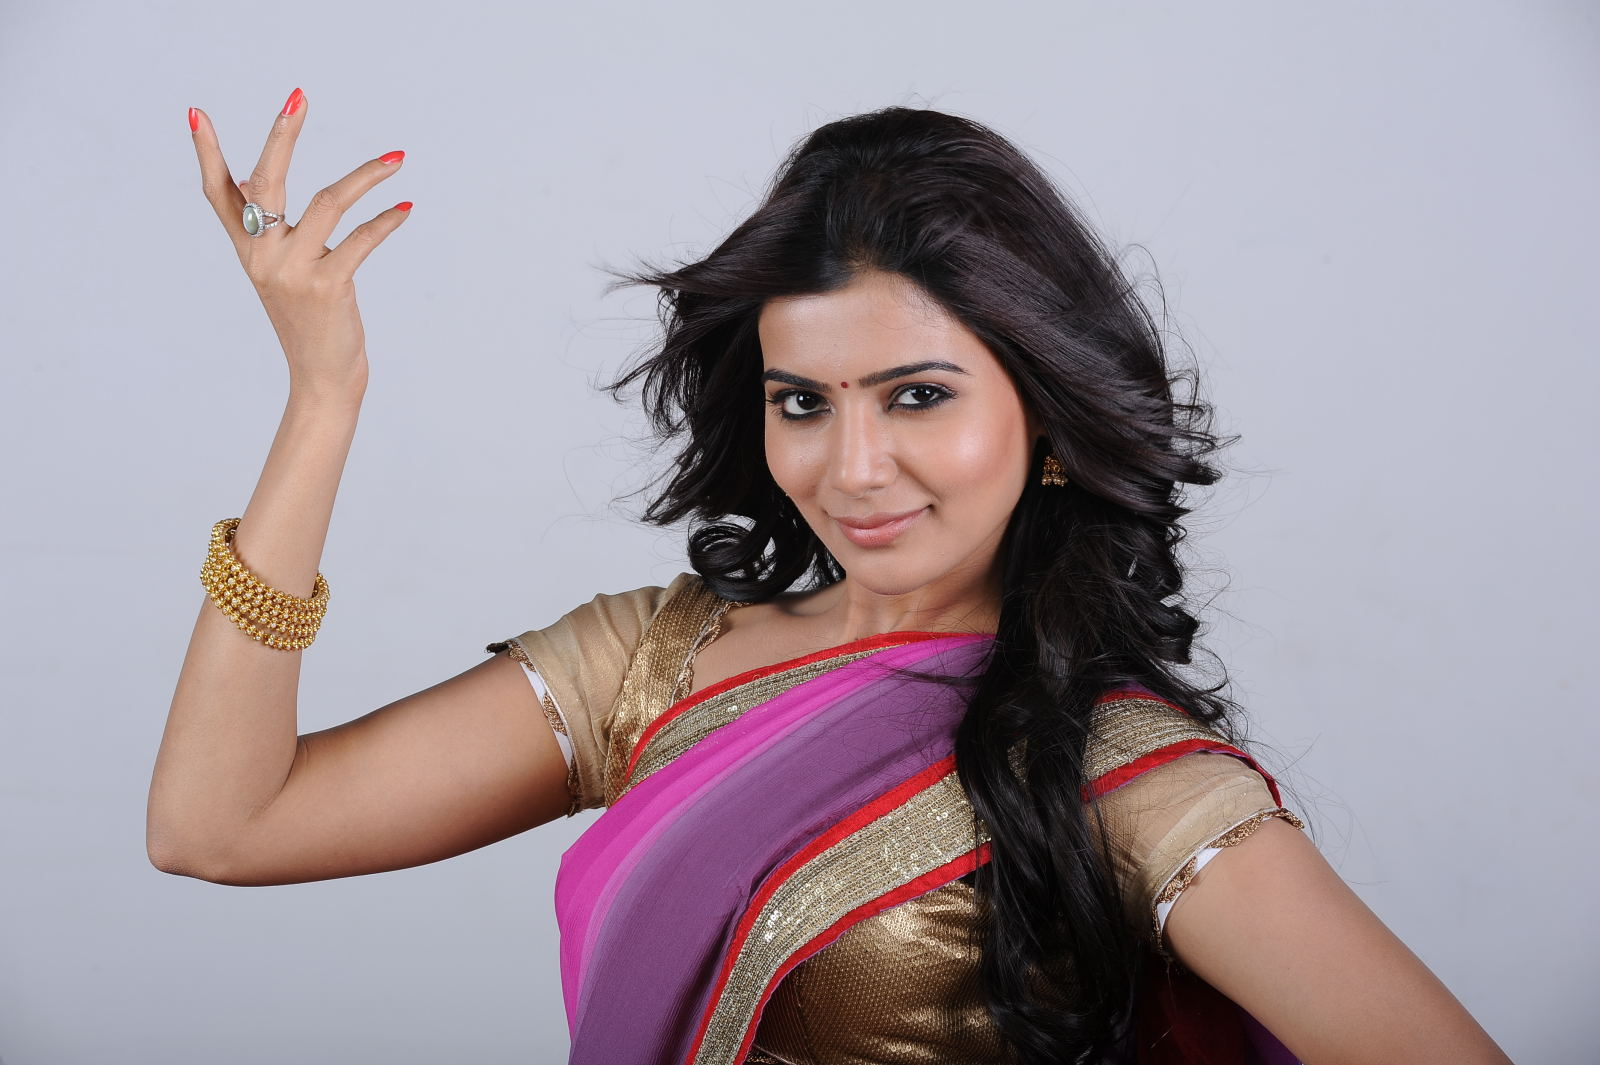 samantha ruth prabhu wallpaper and background image | 1600x1065 | id